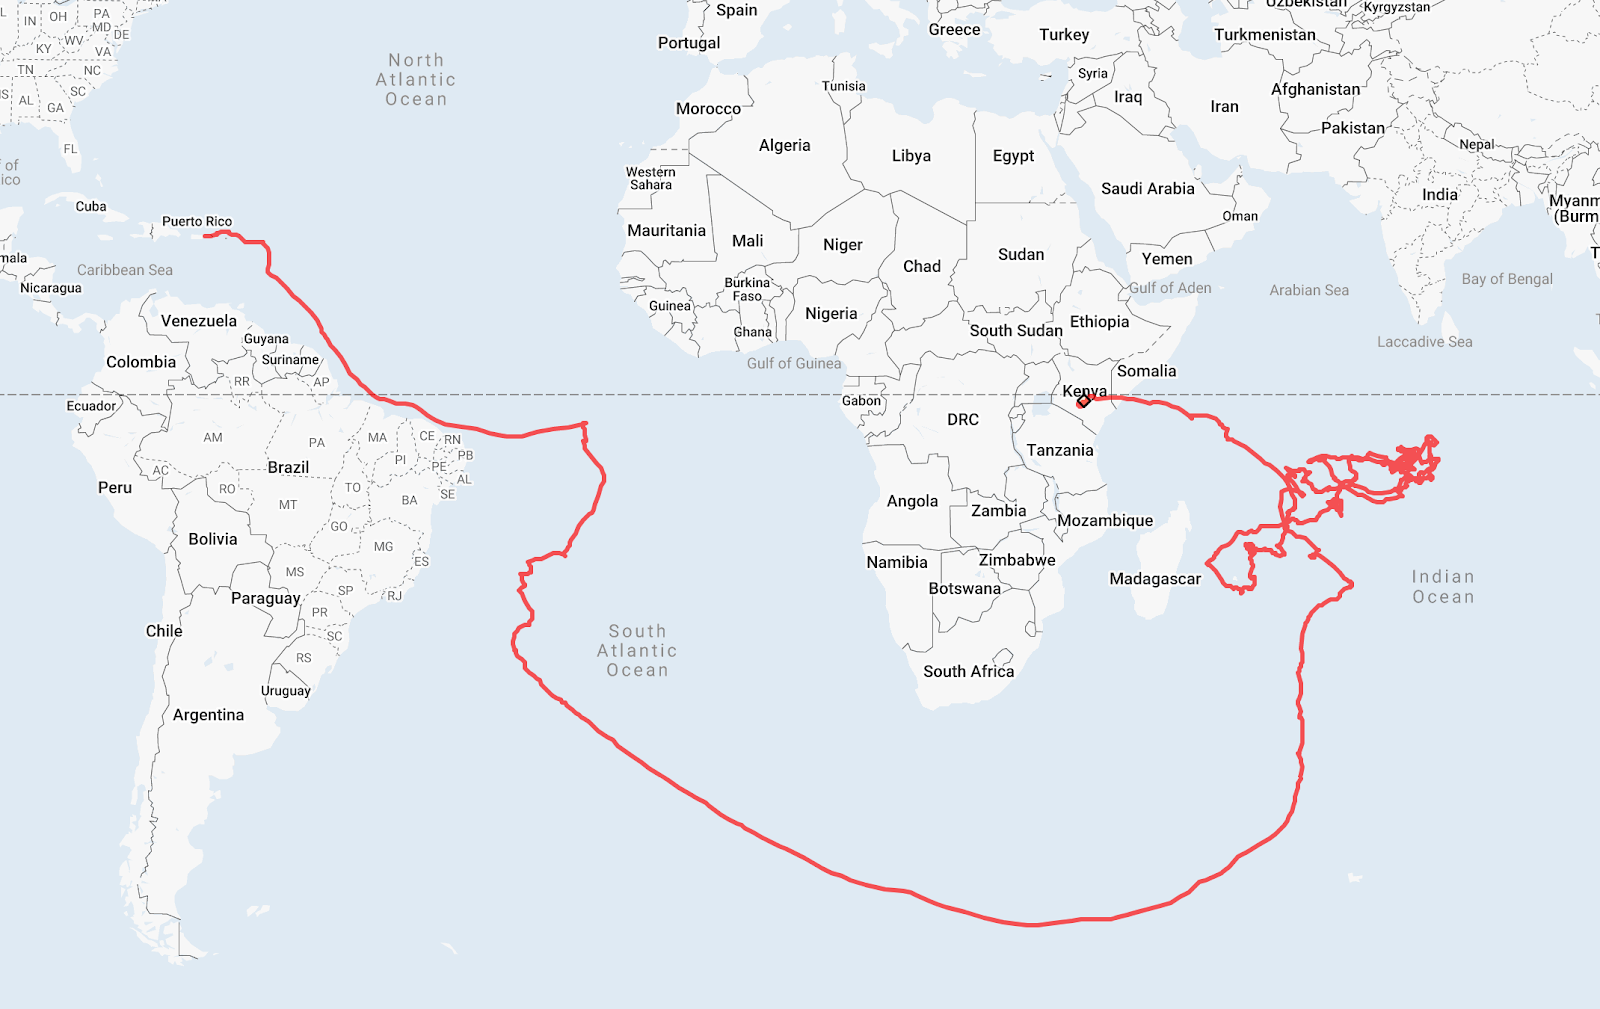 A map showing the route of Alphabet's Loon balloons from Puerto Rico to Kenya.